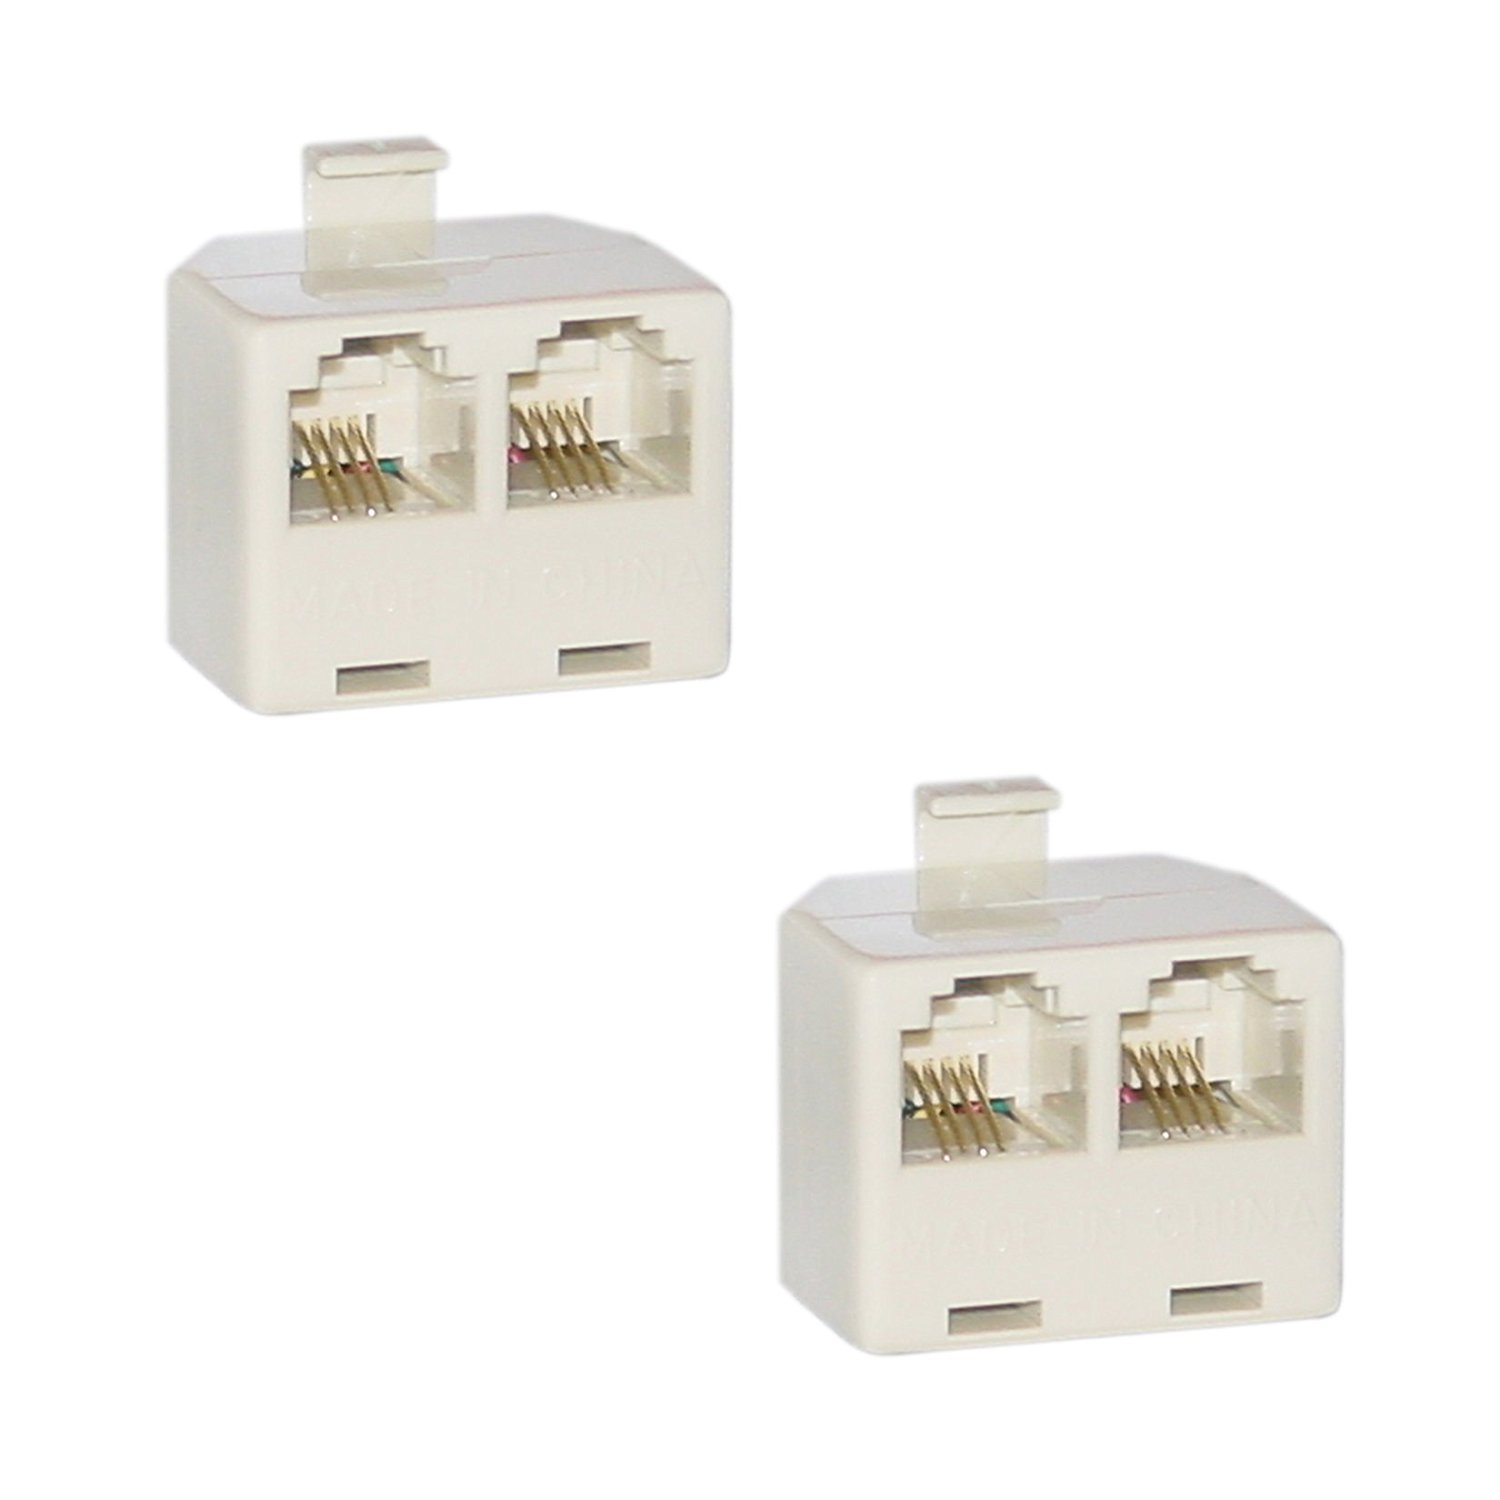 C&E Phone Splitter, RJ11 6P4C Male to 2 RJ11 6P4C Female Cable, 2-Pack (CNE26849)